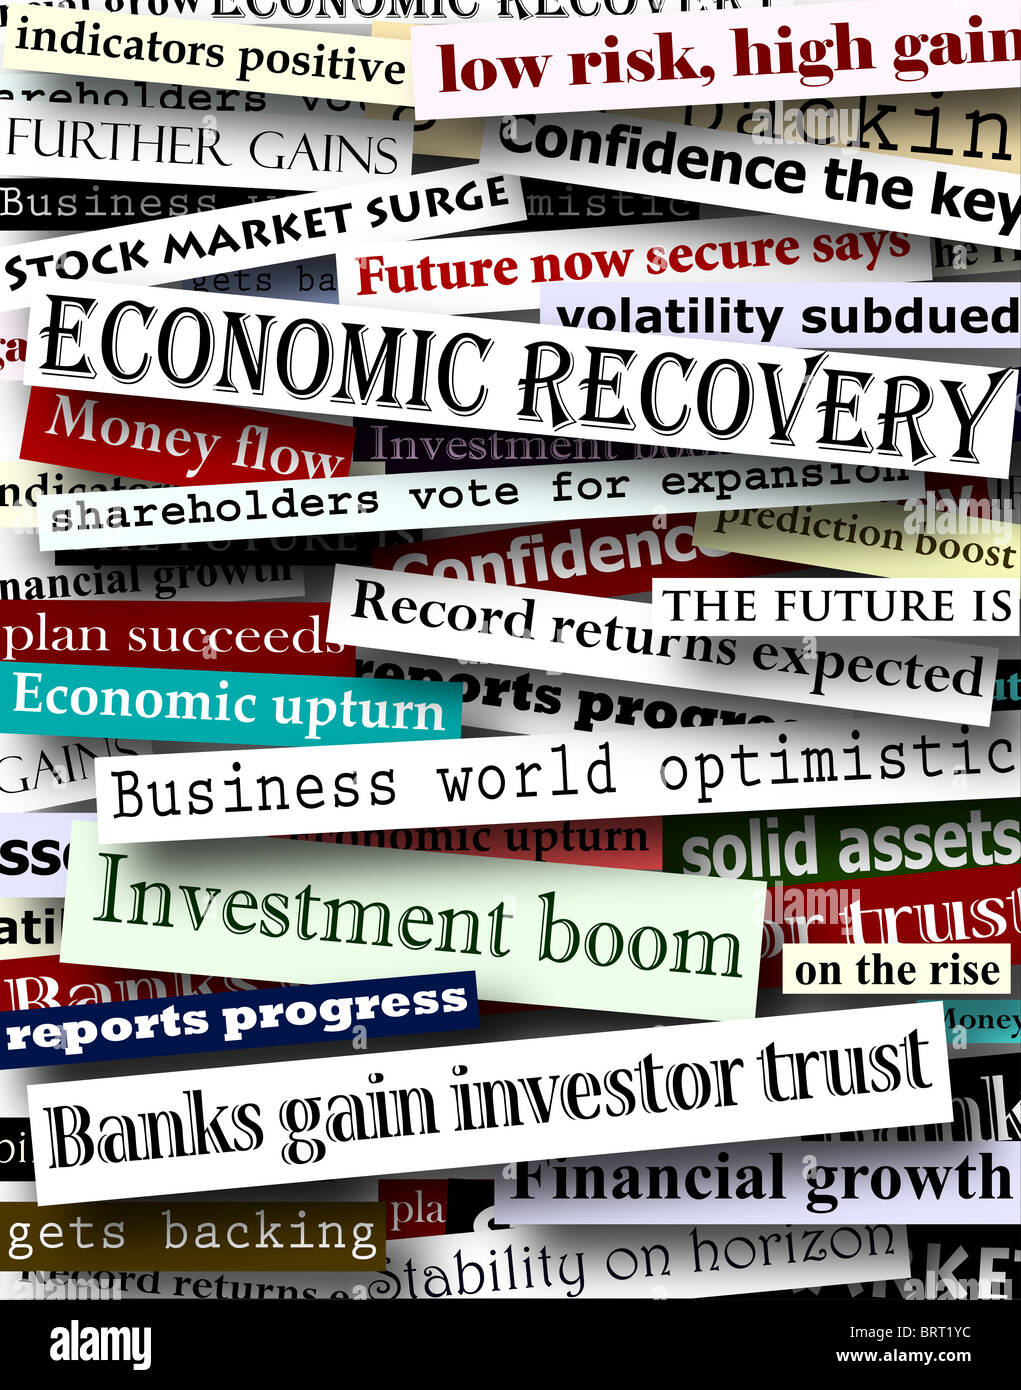 Background design of newspaper headlines about economic recovery - Stock Image